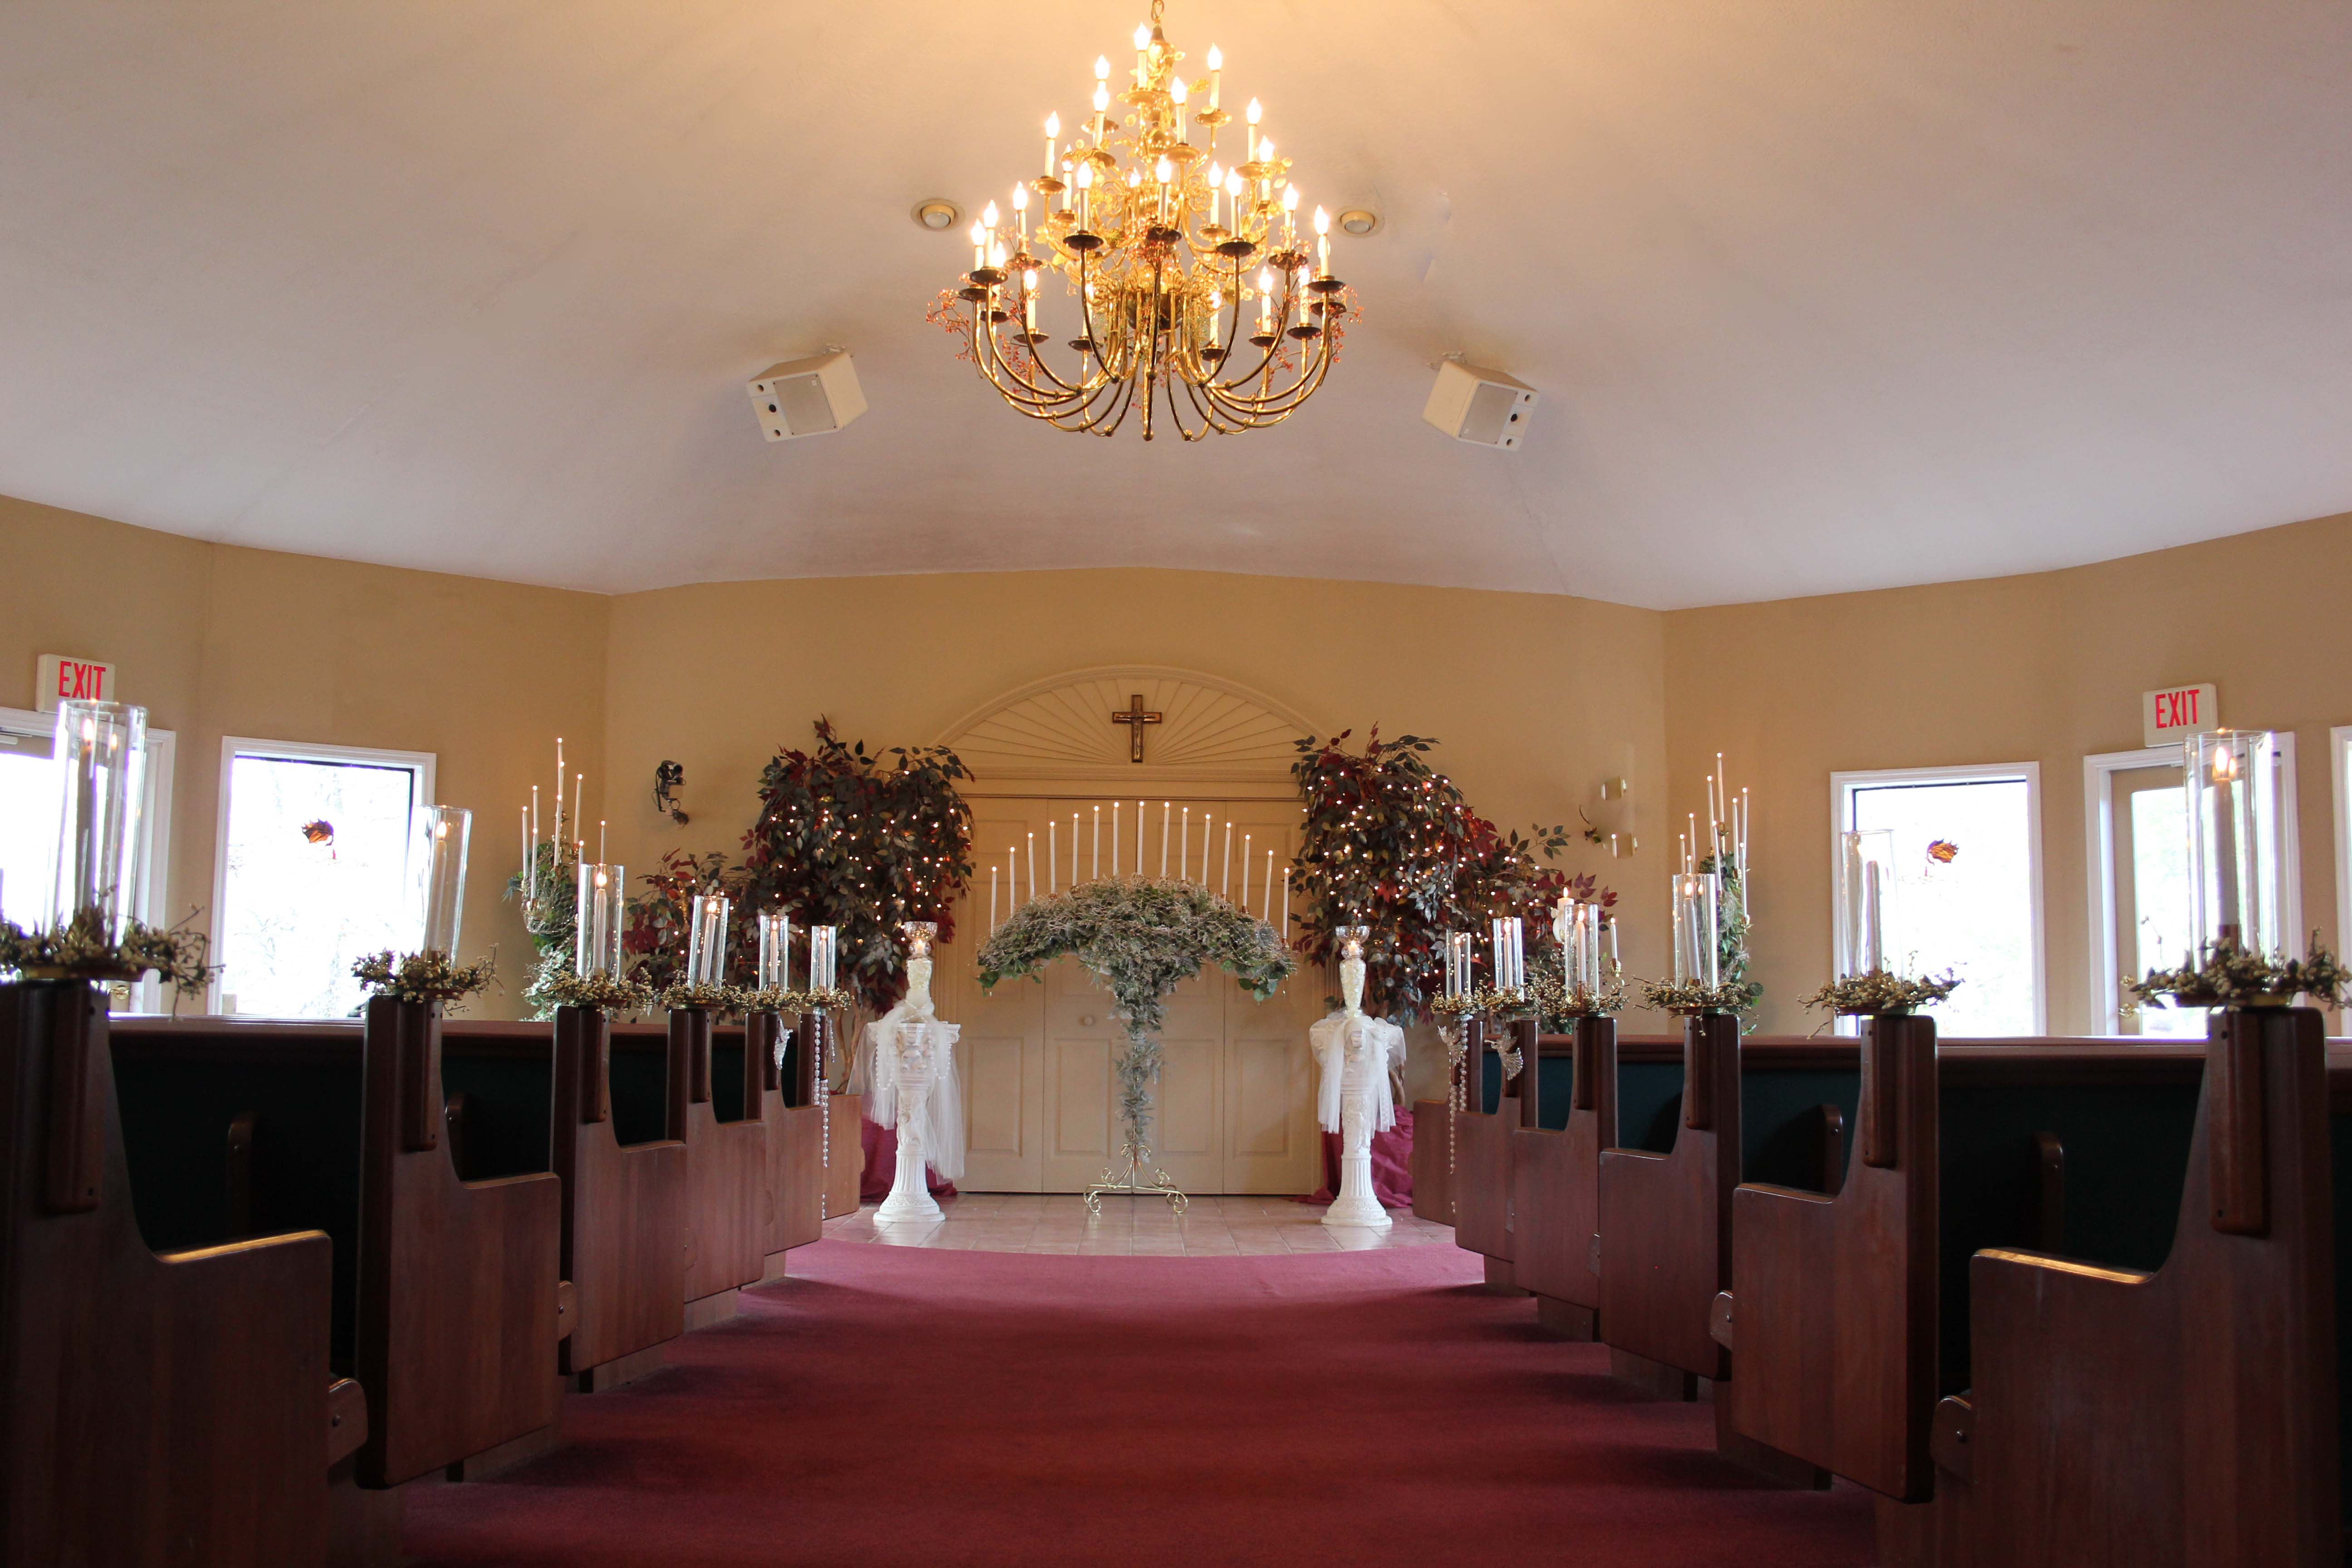 Mountain Valley Wedding Chapel 1156 Wears Rd Pigeon Forge Tn 37863 Closed Yp